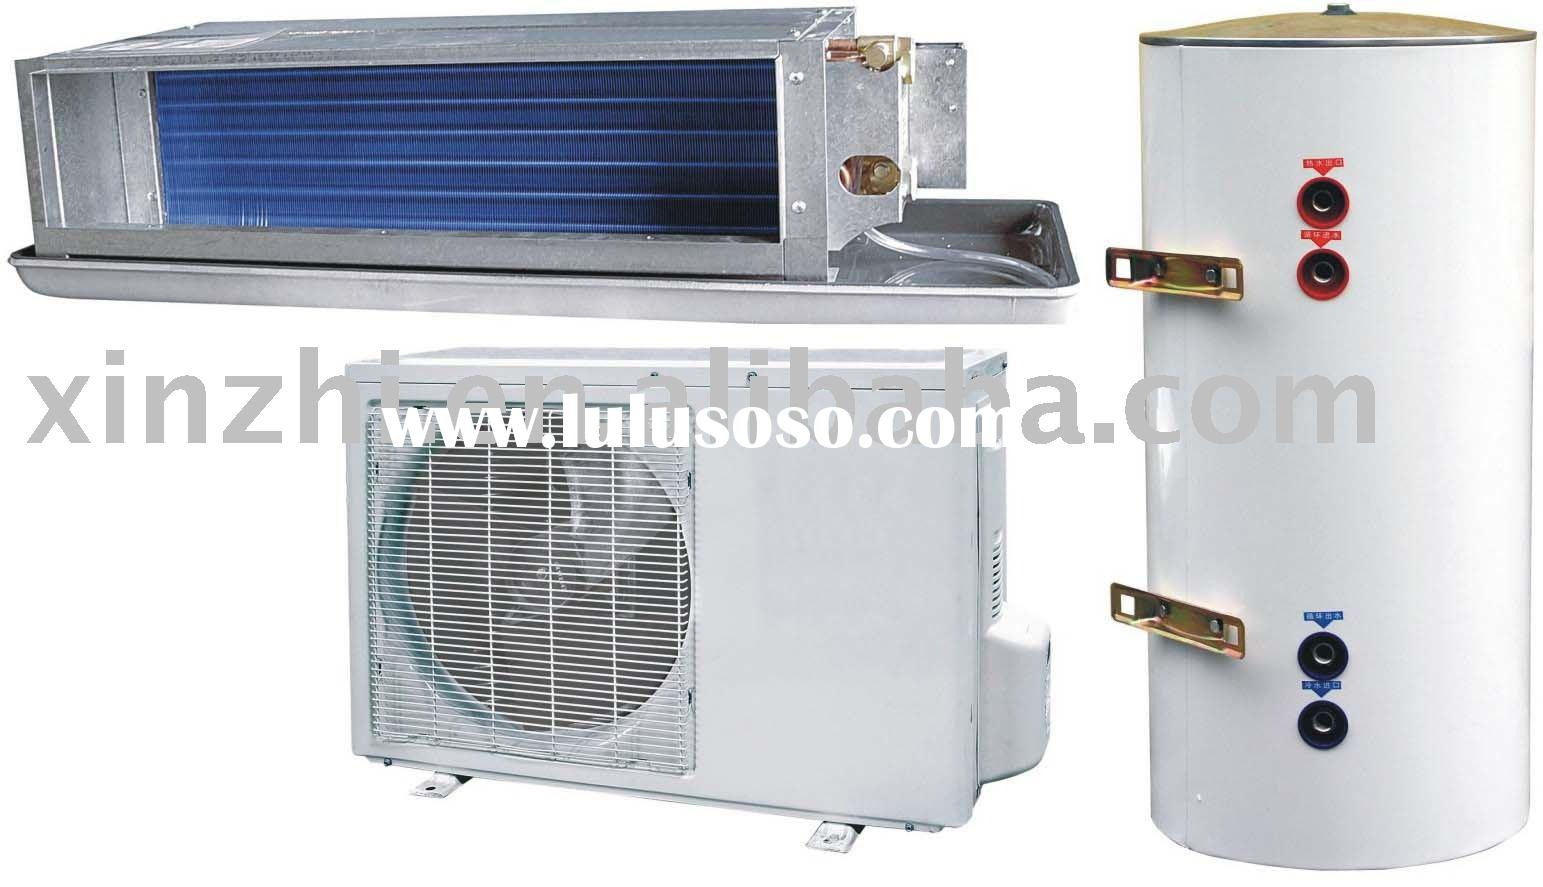 Duct Air Conditioner With Heat Recovery Water Heater